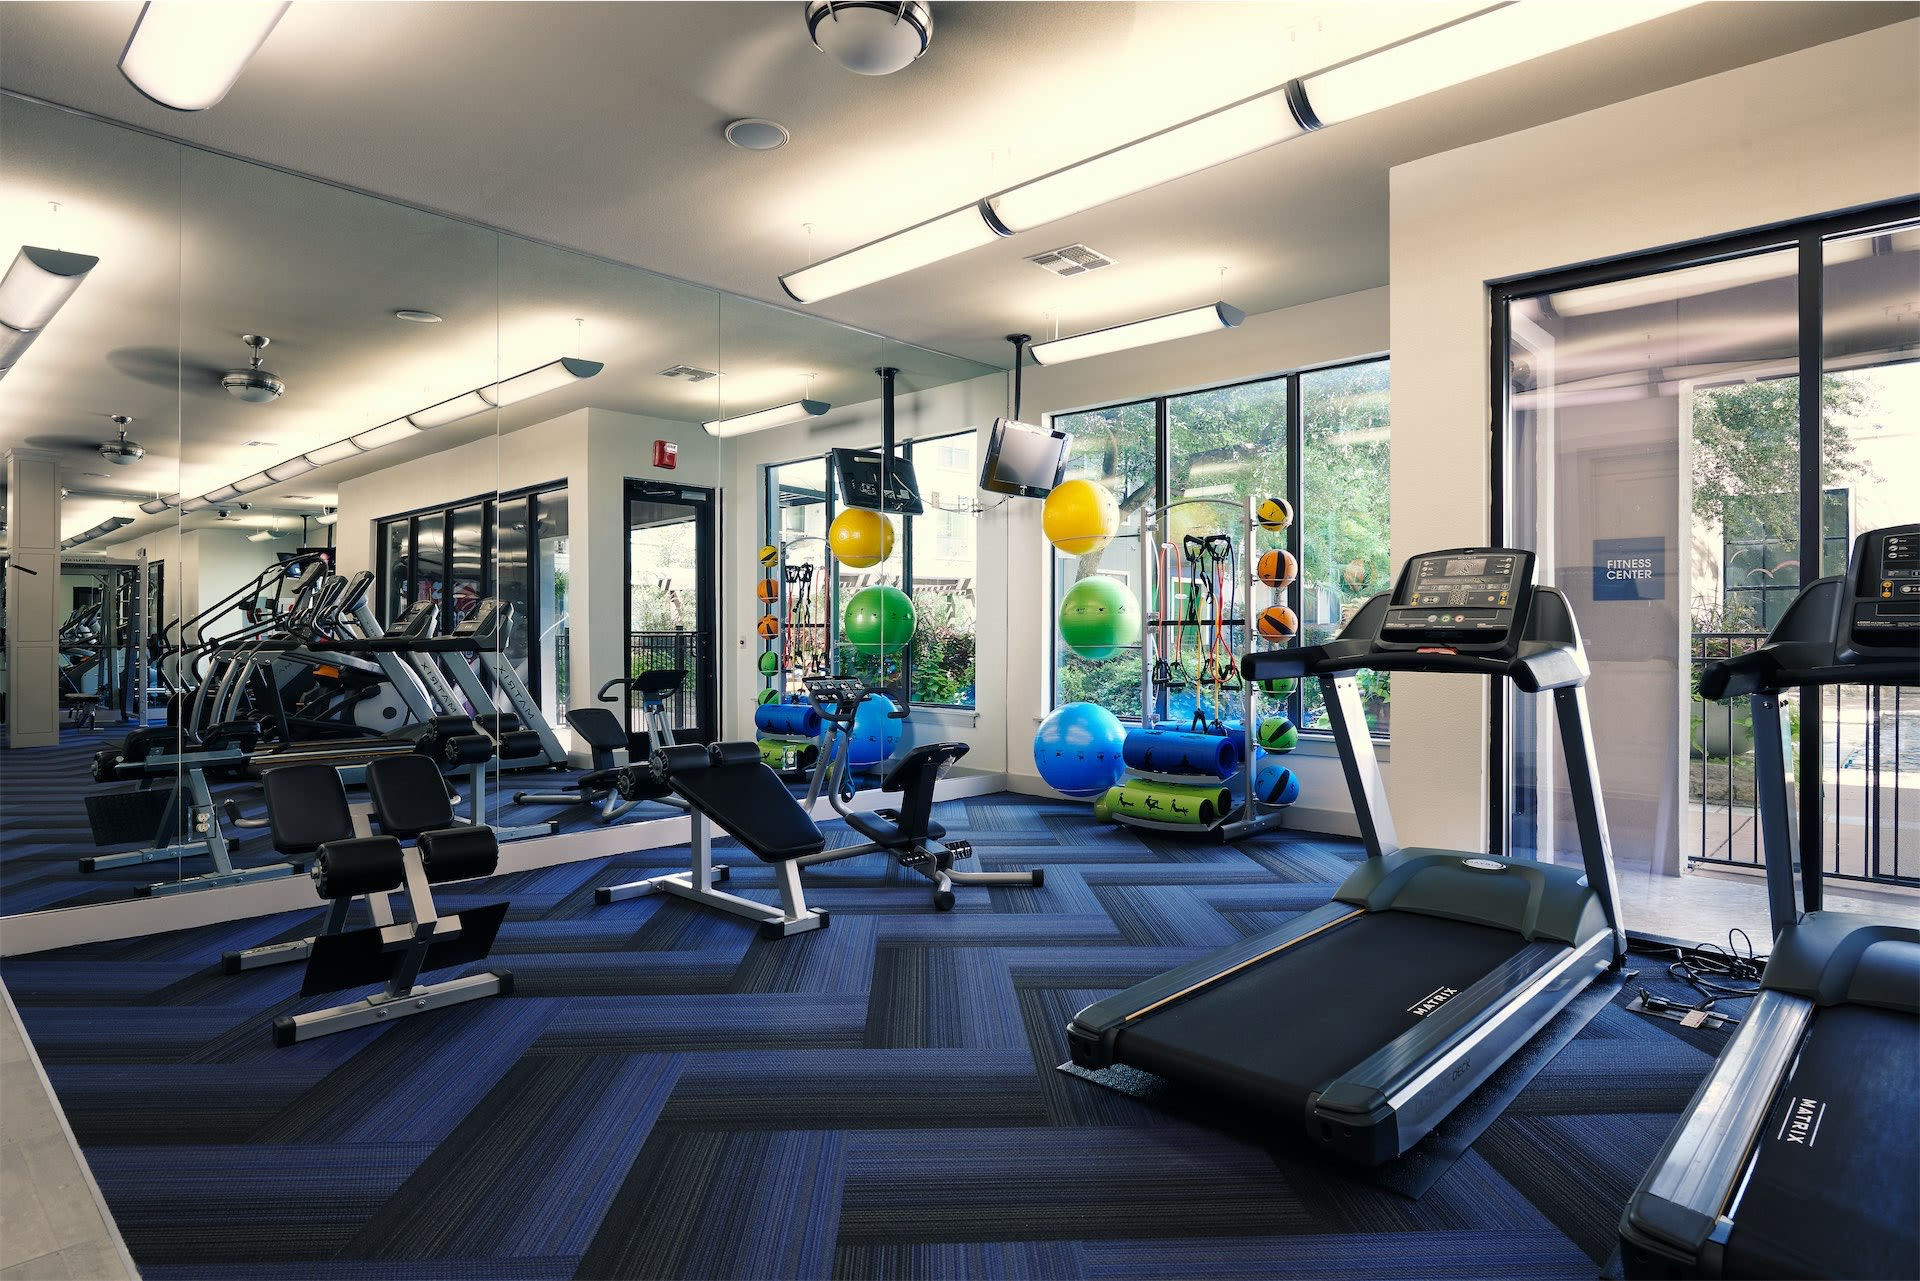 Treadmills and workout equipment at Seville Uptown in Dallas, Texas